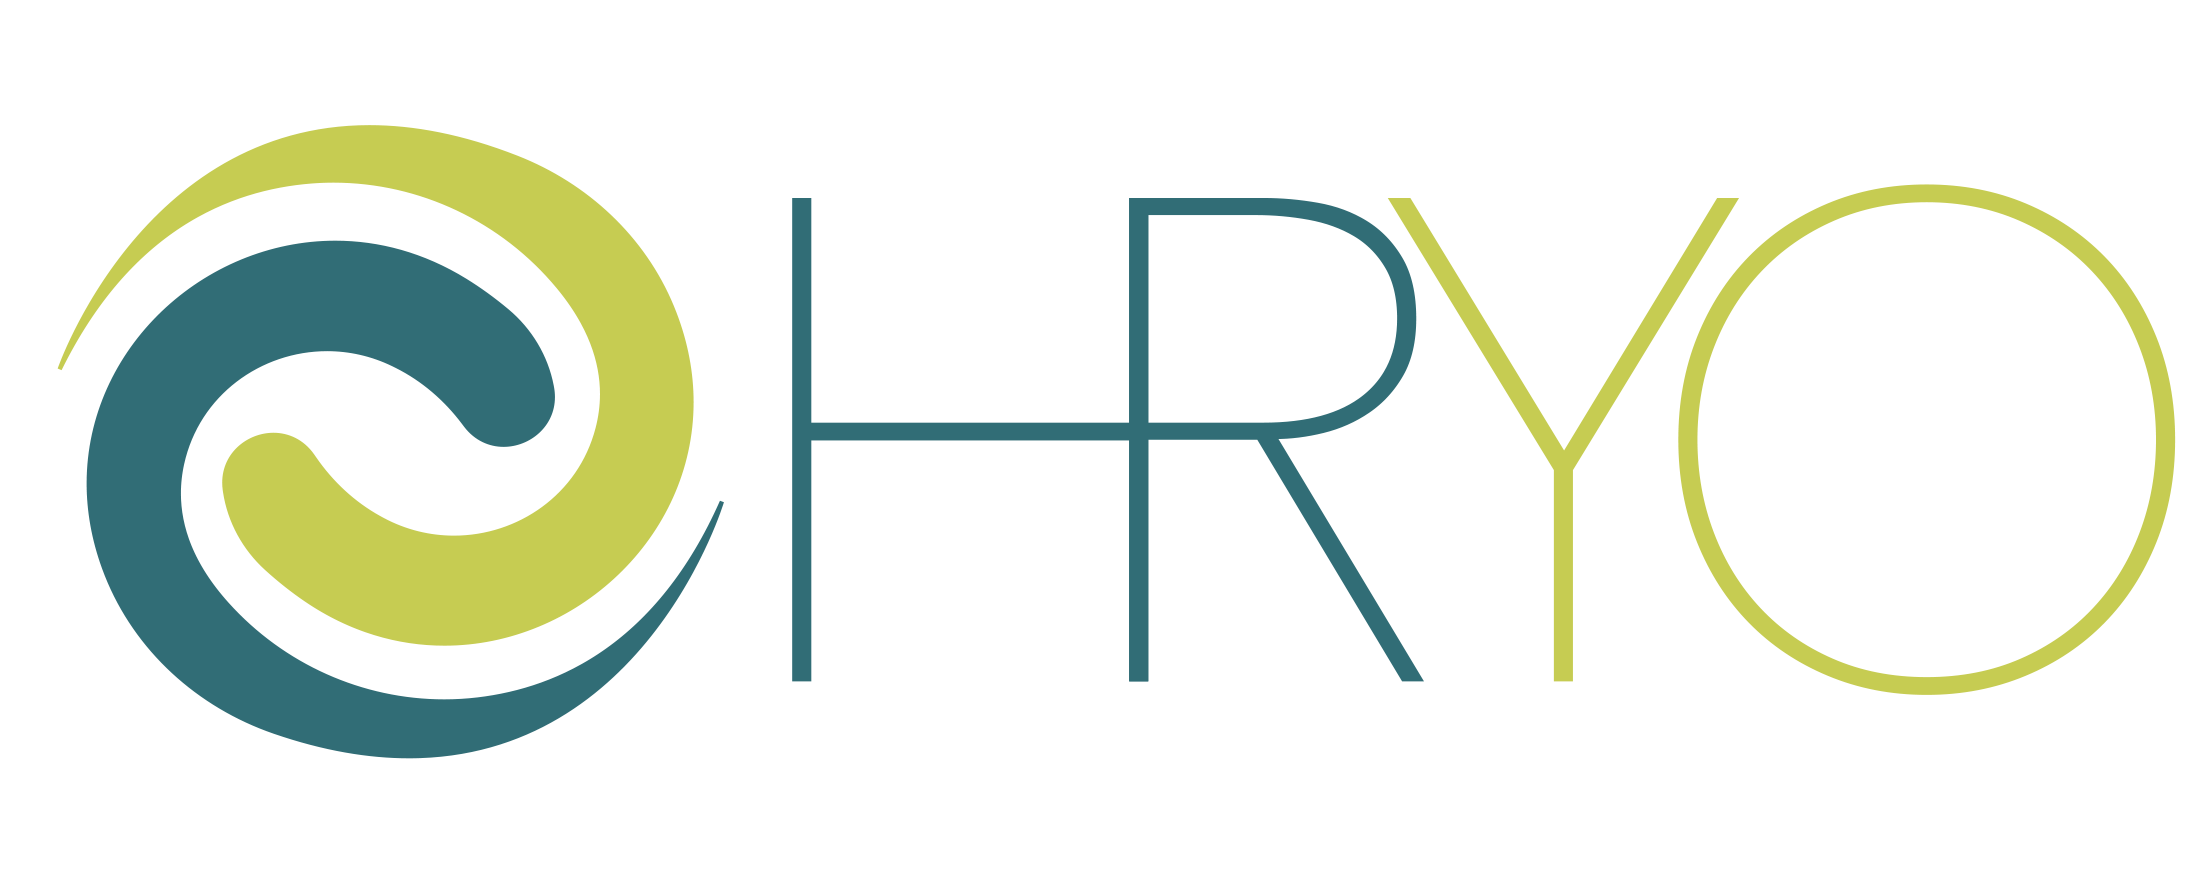 HRYO – Human Rights Youth Organization